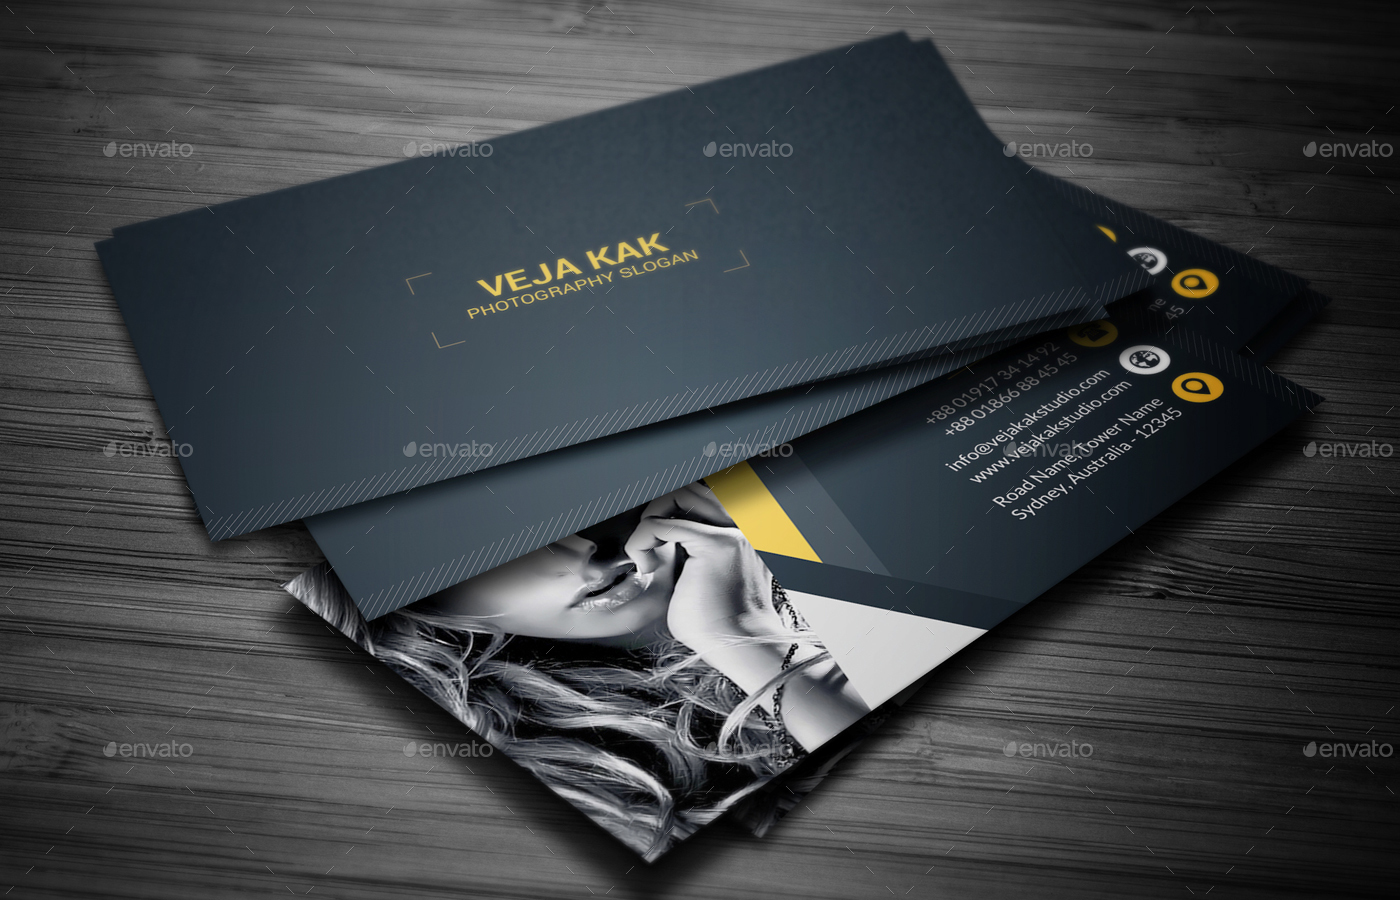 Photography business card by vejakakstudio graphicriver photography business card industry specific business cards preview01g preview02g preview03g alramifo Image collections